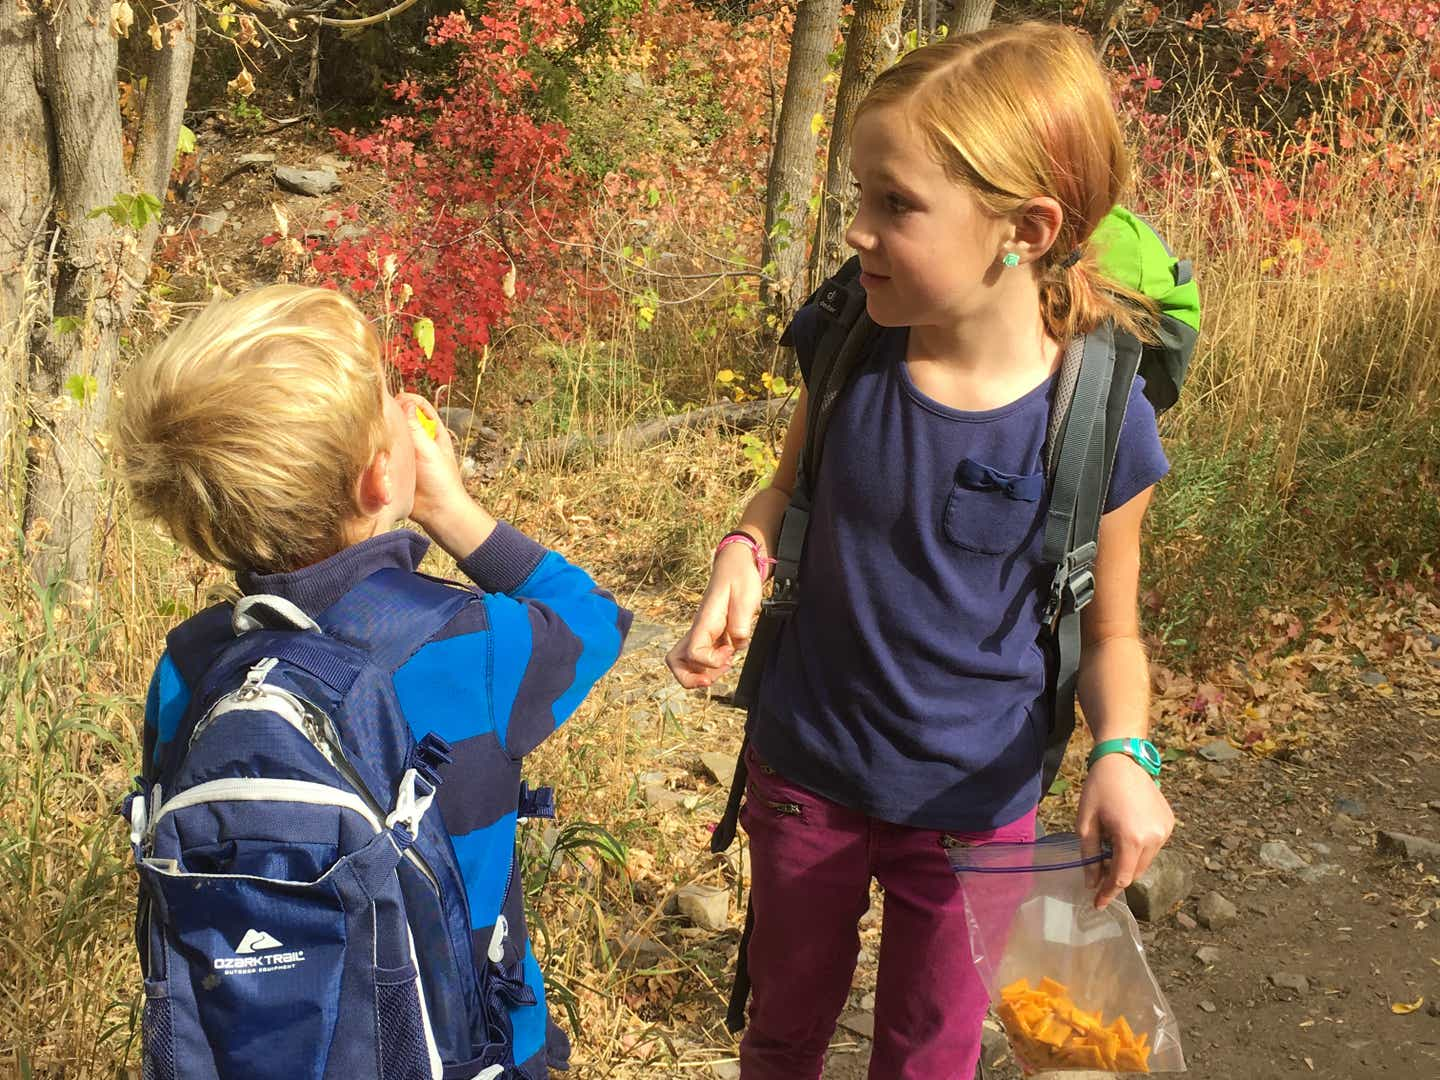 Jessica's daughter and son stopping for a break to eat snacks on their hike